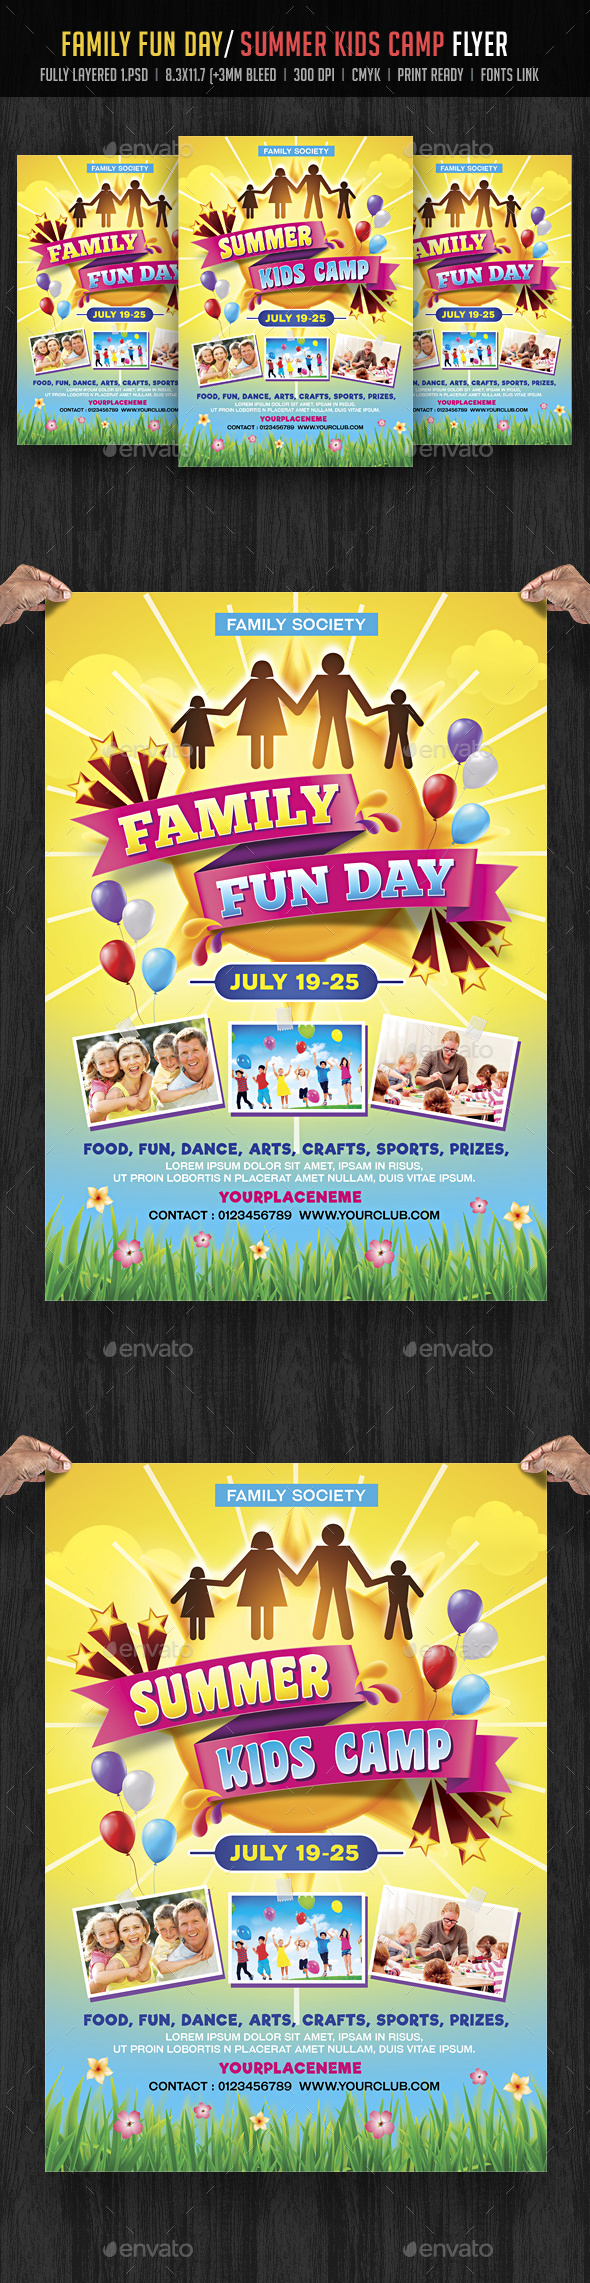 Family Fun Day/ Summer Kids Camp Flyer